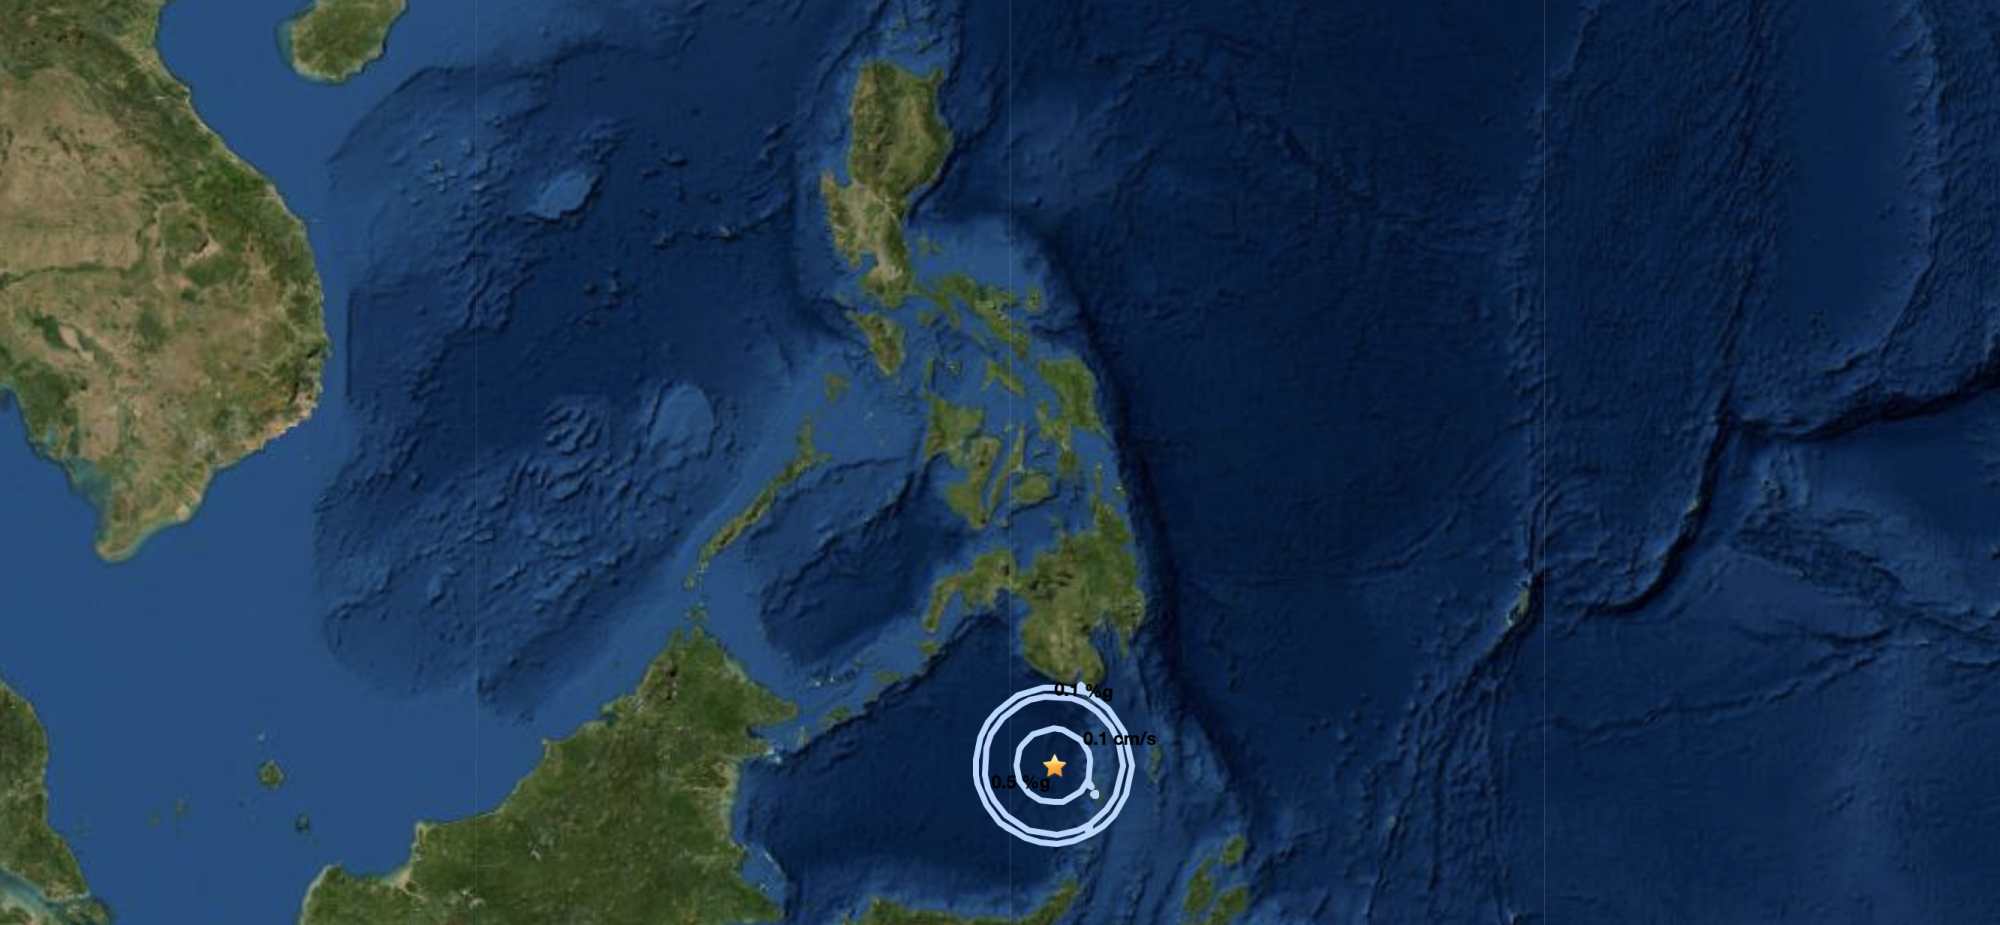 Earthquake of magnitude 6 strikes Celebes Sea, near Philippines – EMSC